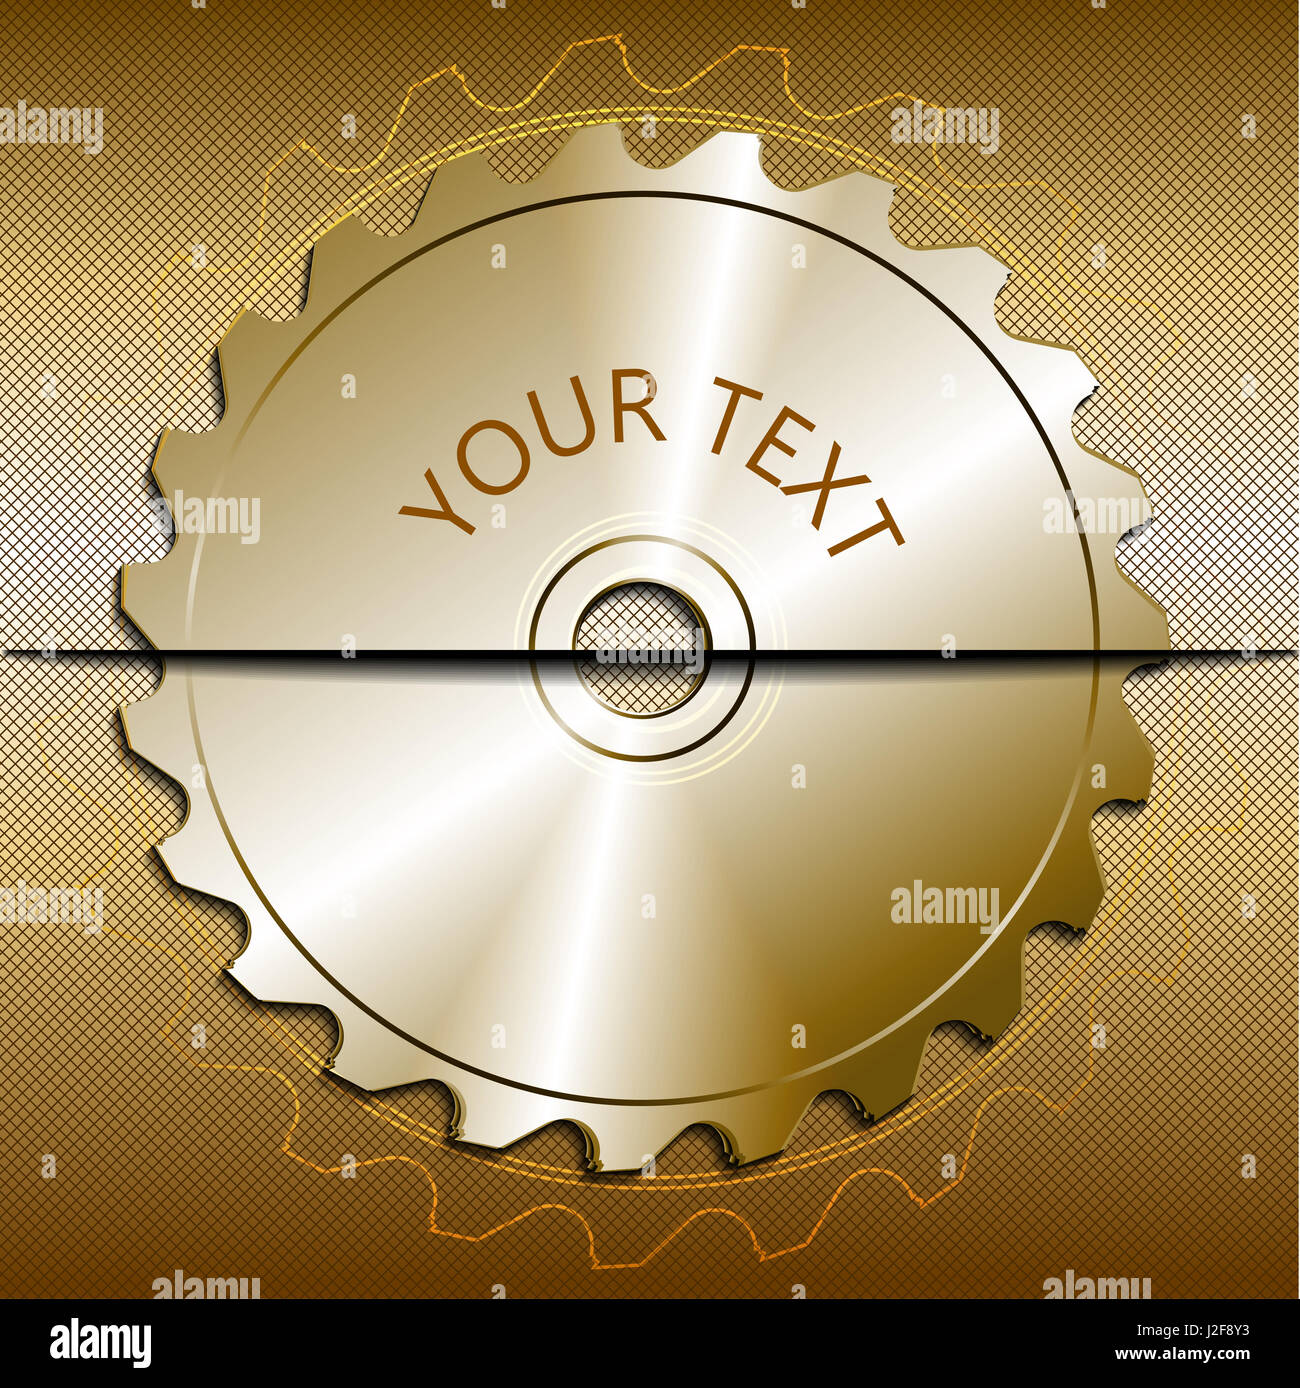 Circular saw blade on a metallic background. Place for text. Vector illustration - Stock Image